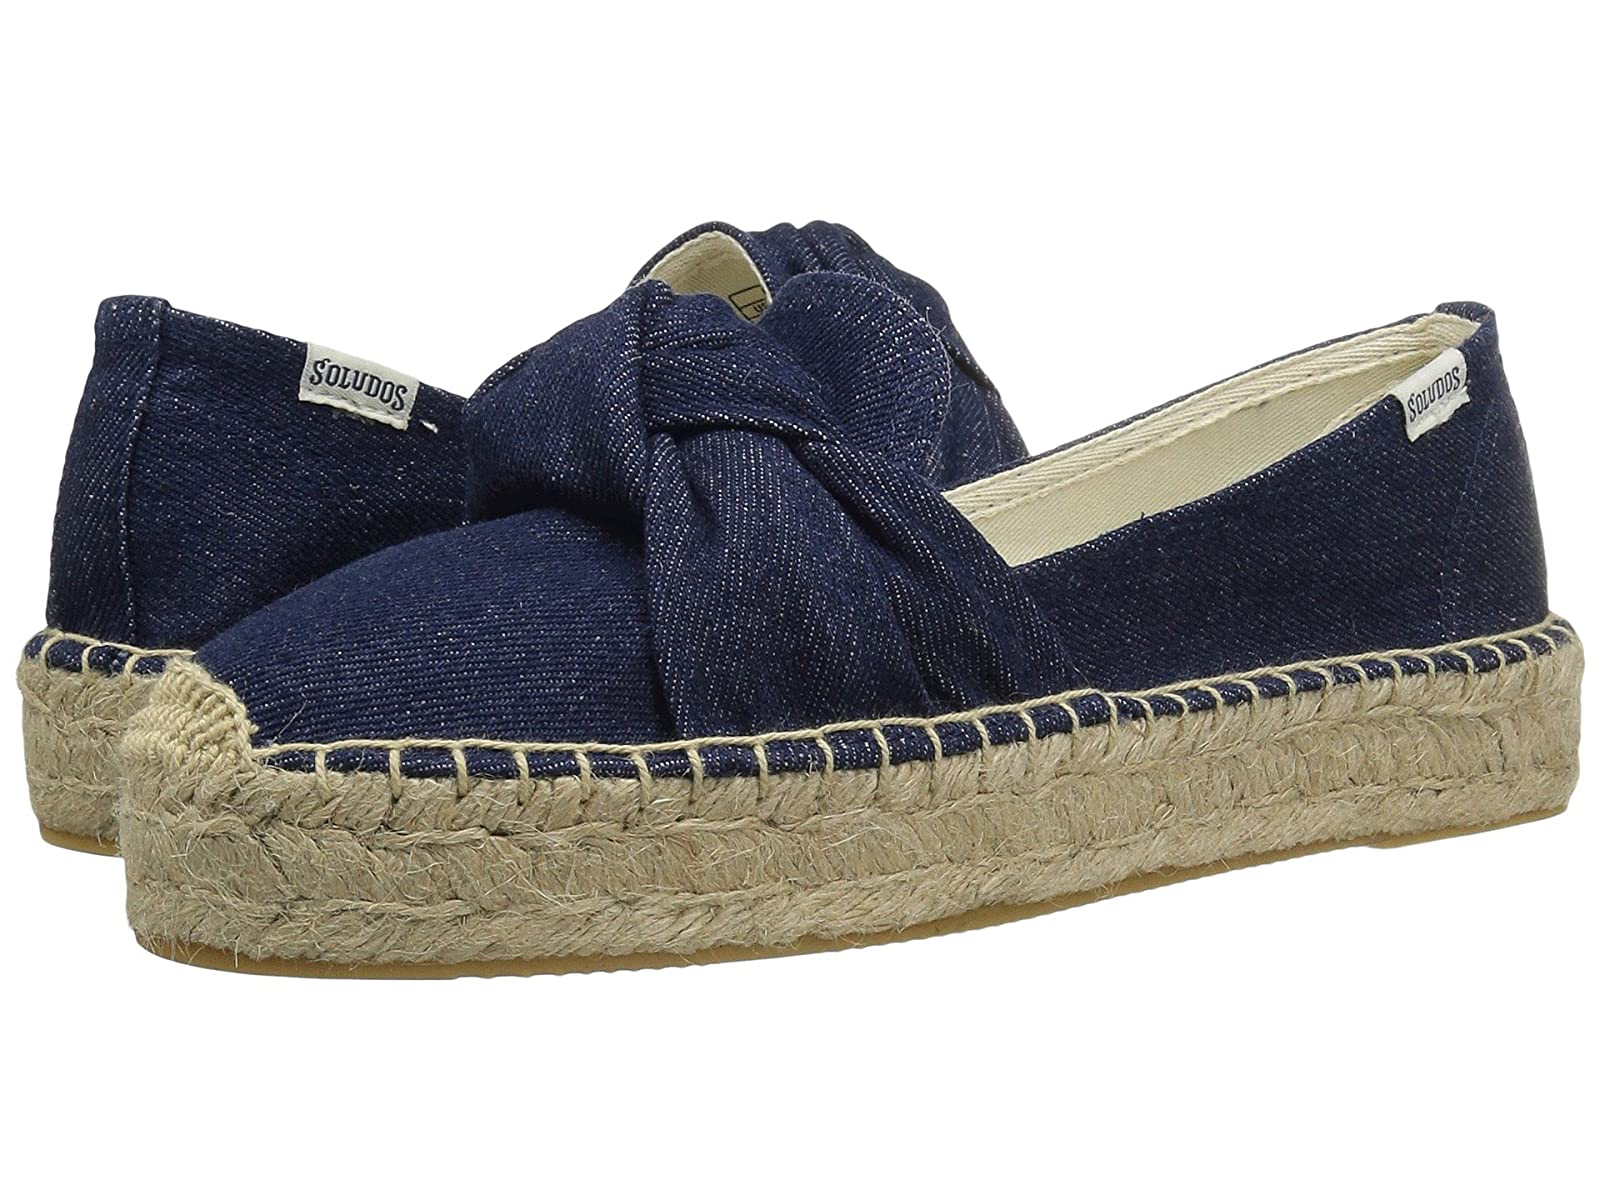 Soludos Knotted Platform Smoking SlipperCheap and distinctive eye-catching shoes